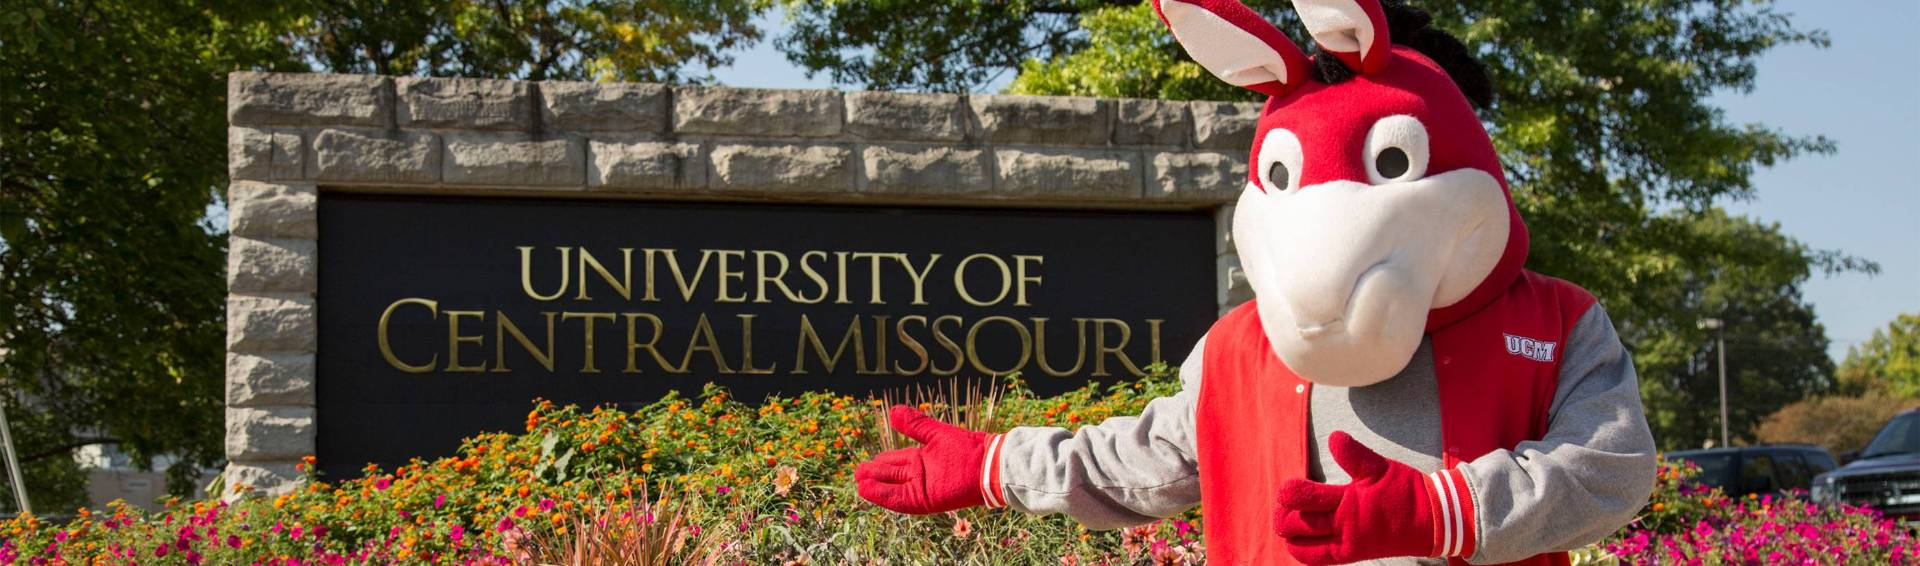 University of Central Missouri welcome sign with Mo the Mule standing beside it